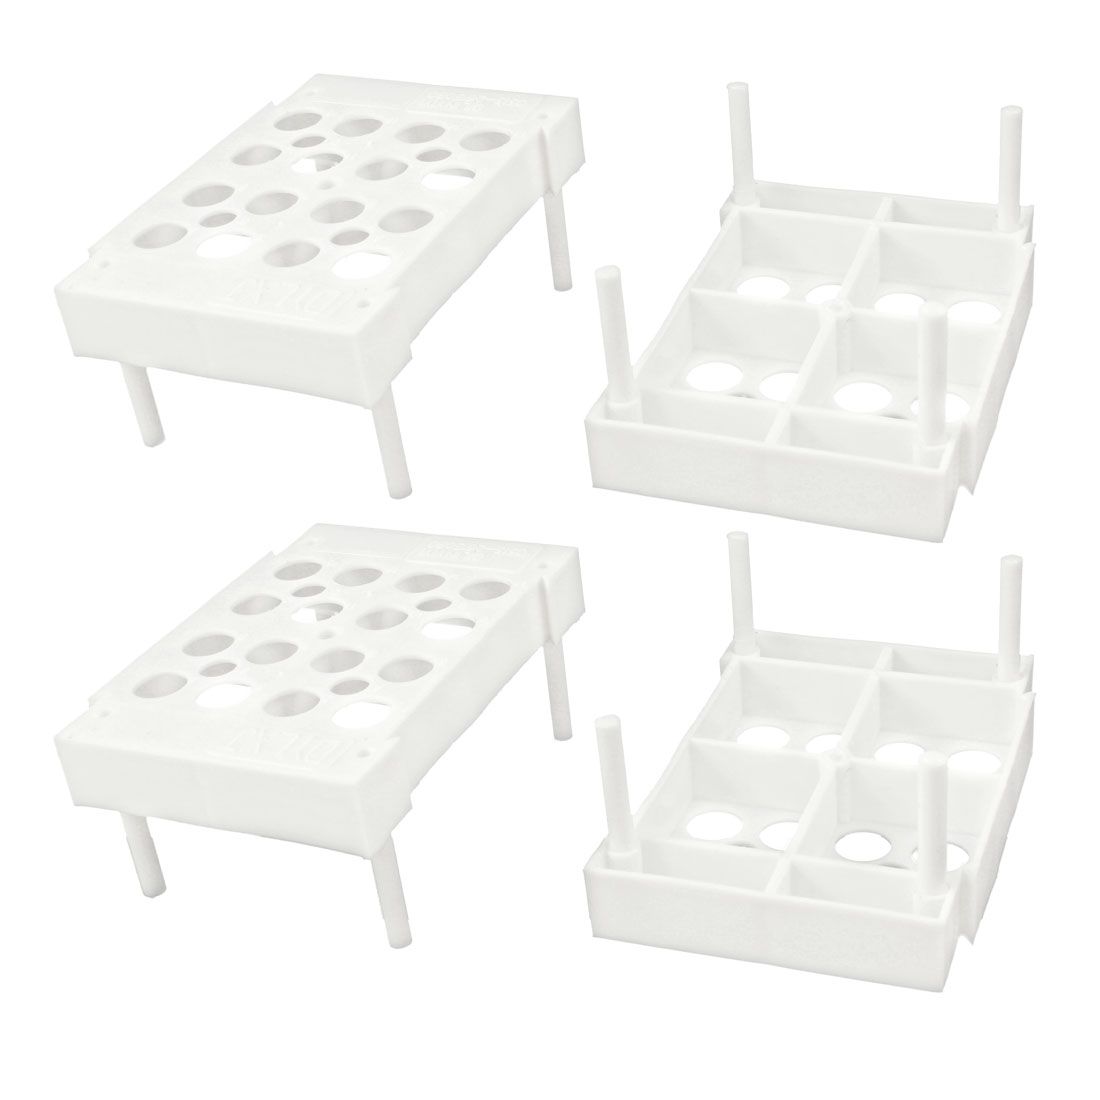 Scientific White Plastic Test Tube Rack 4 Pcs for 8mm 10mm Diameter Tubes